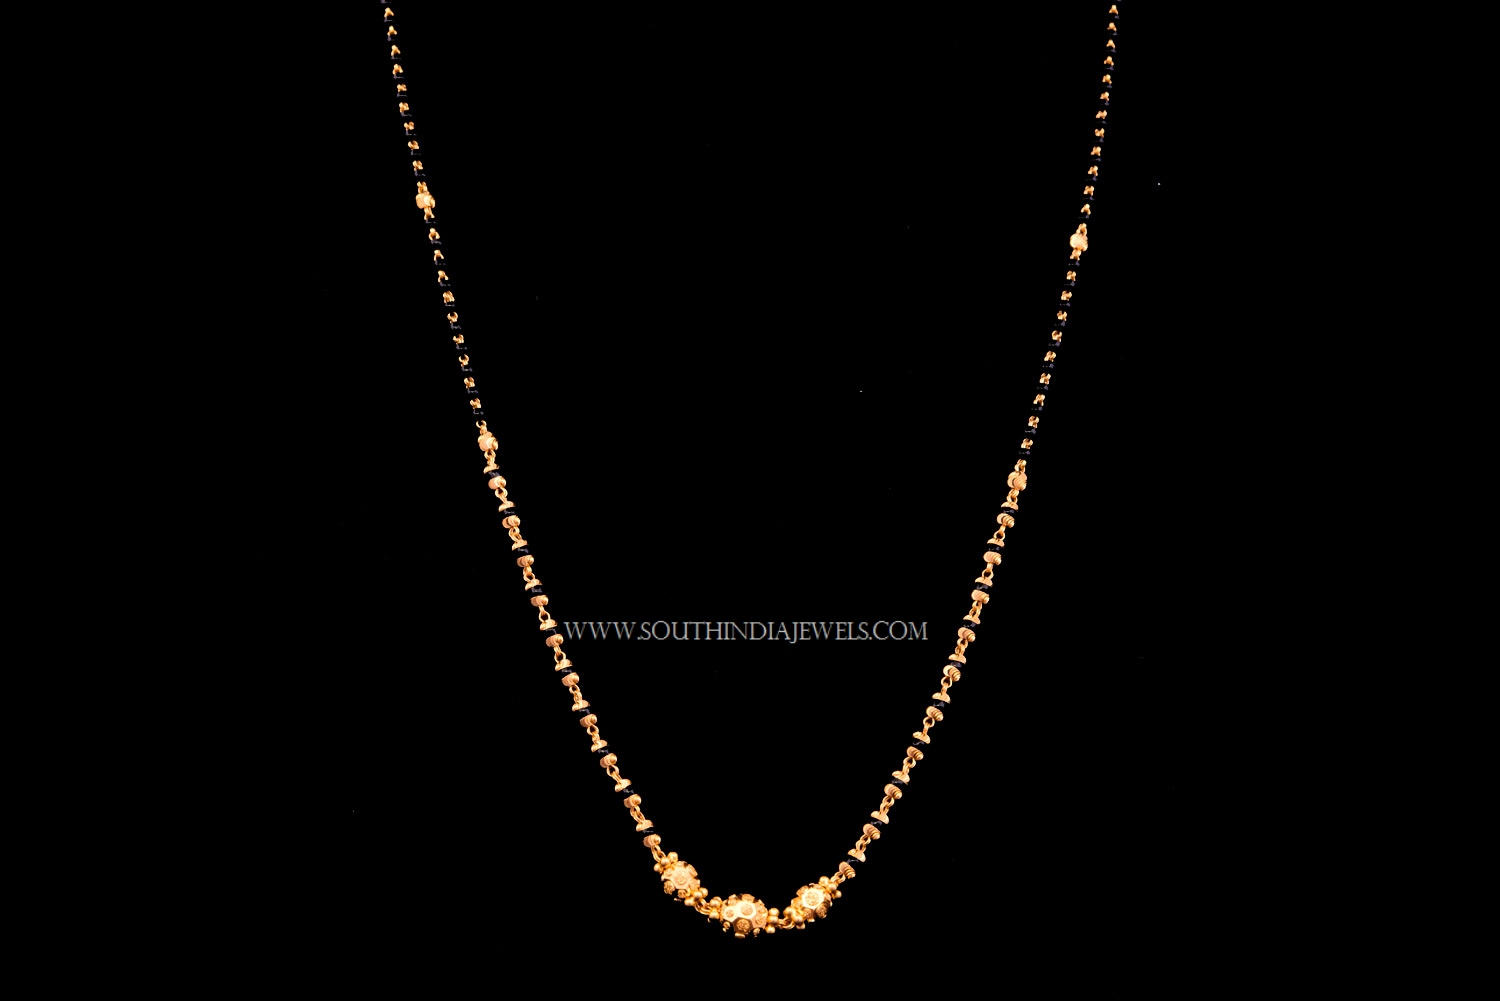 Simple 22k gold chain necklace south india jewels